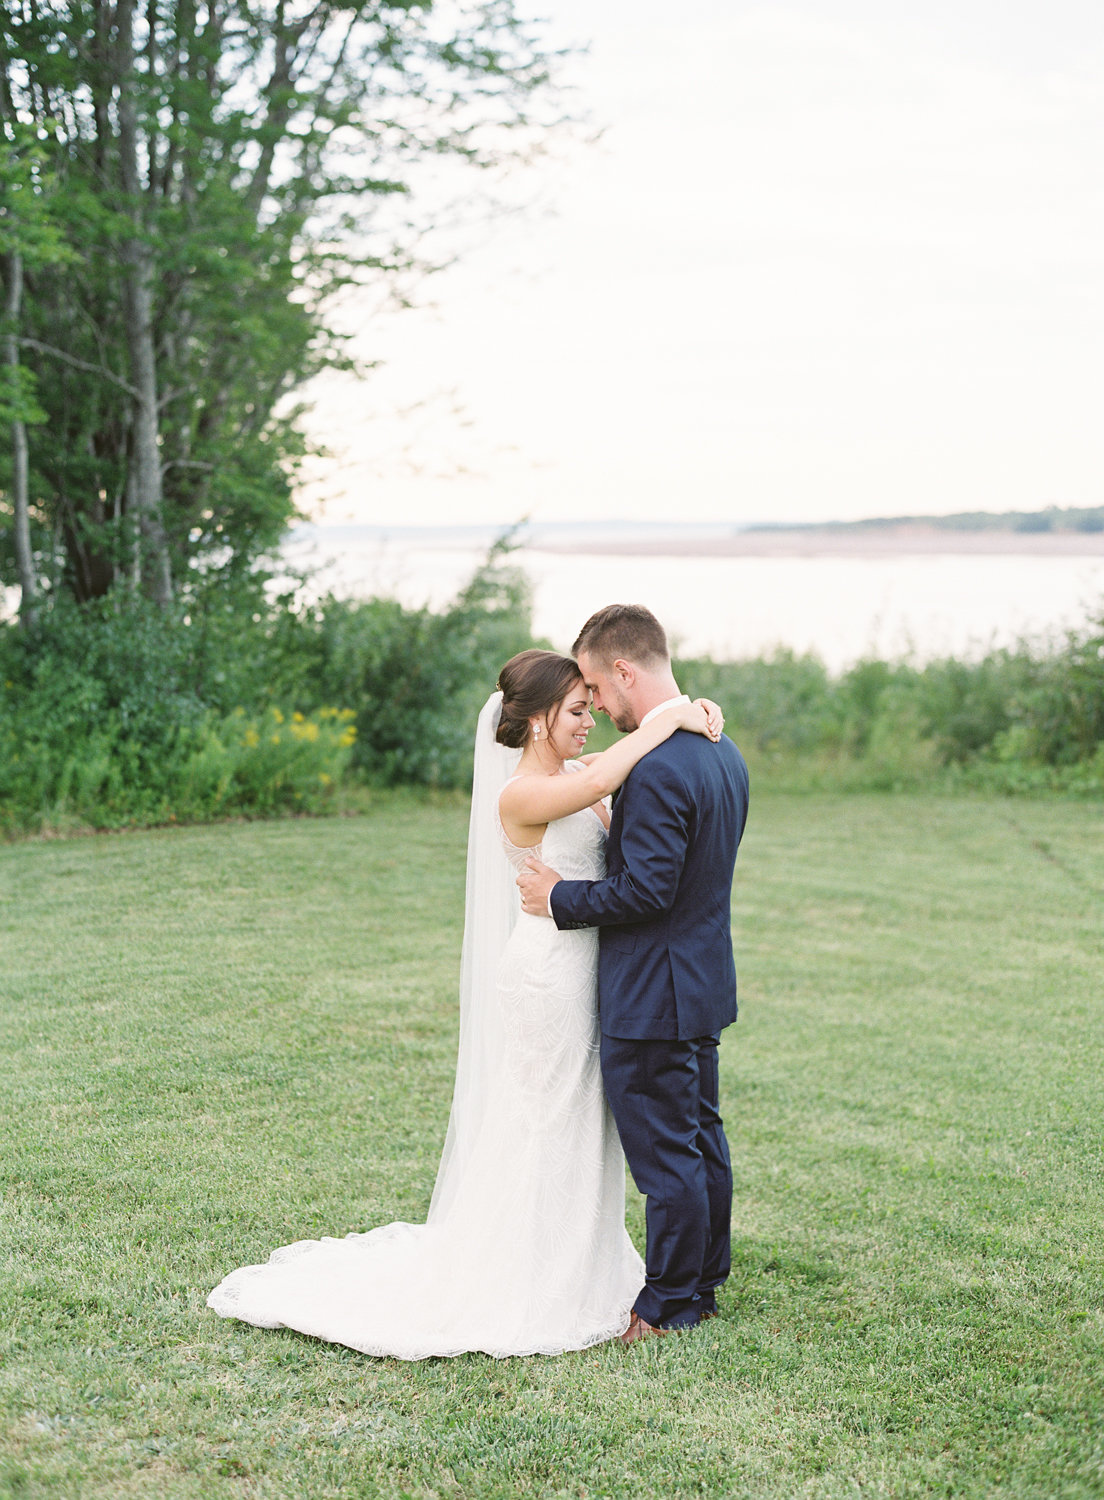 Jacqueline Anne Photography - Nova Scotia Backyard Wedding-84